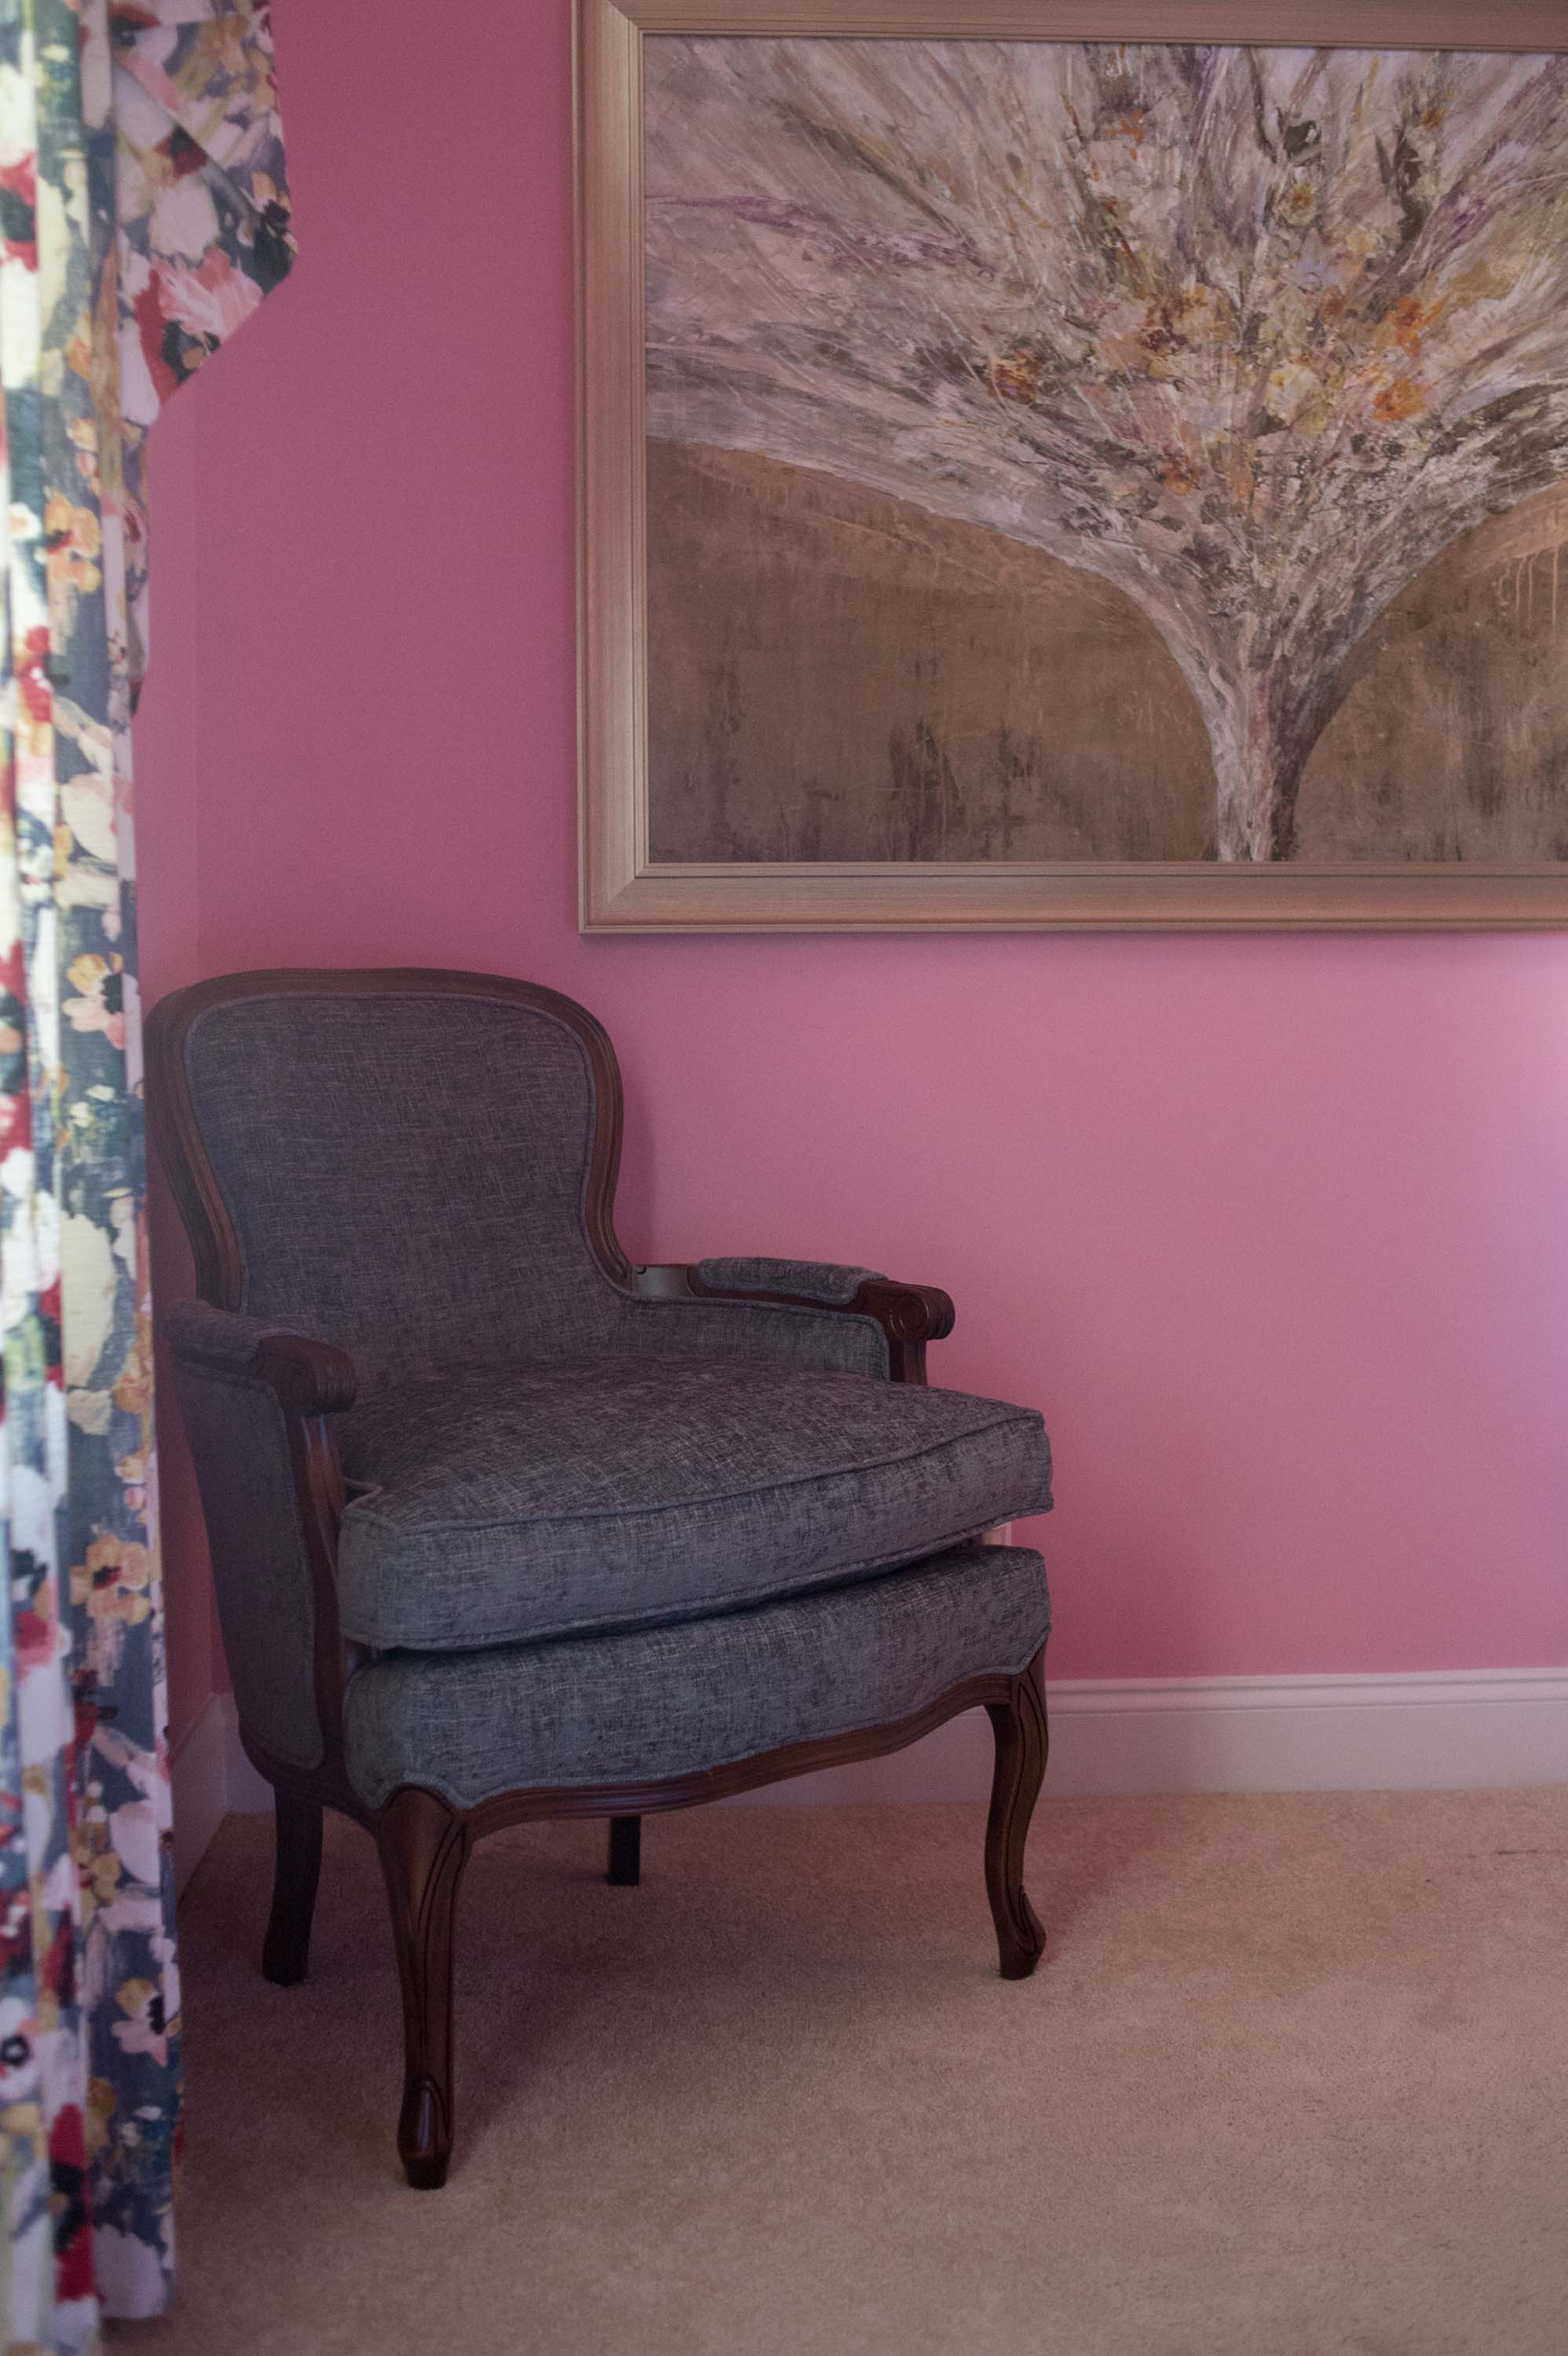 Upholstered Chair on Pink Walls in Guest Bedroom